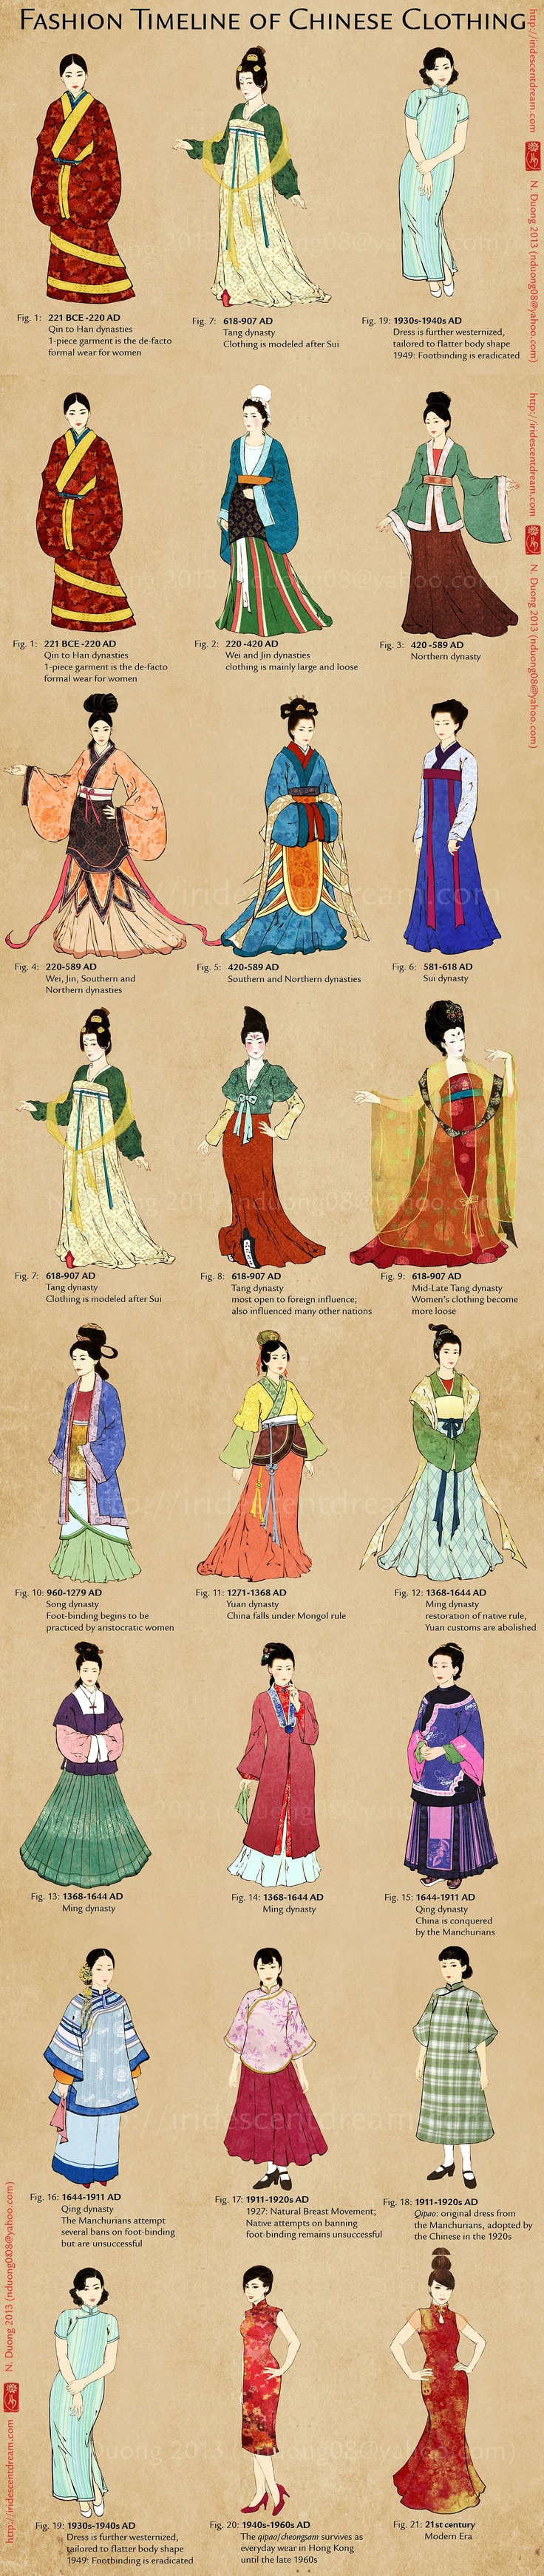 #豆知识#【中国女性服装的演变】Chinese clothing has approximately 5,000 years of history behind it, but regrettably I am only able to cover 2,500 years in this fashion timeline. http://cn.hujiang.com/new/p452213/